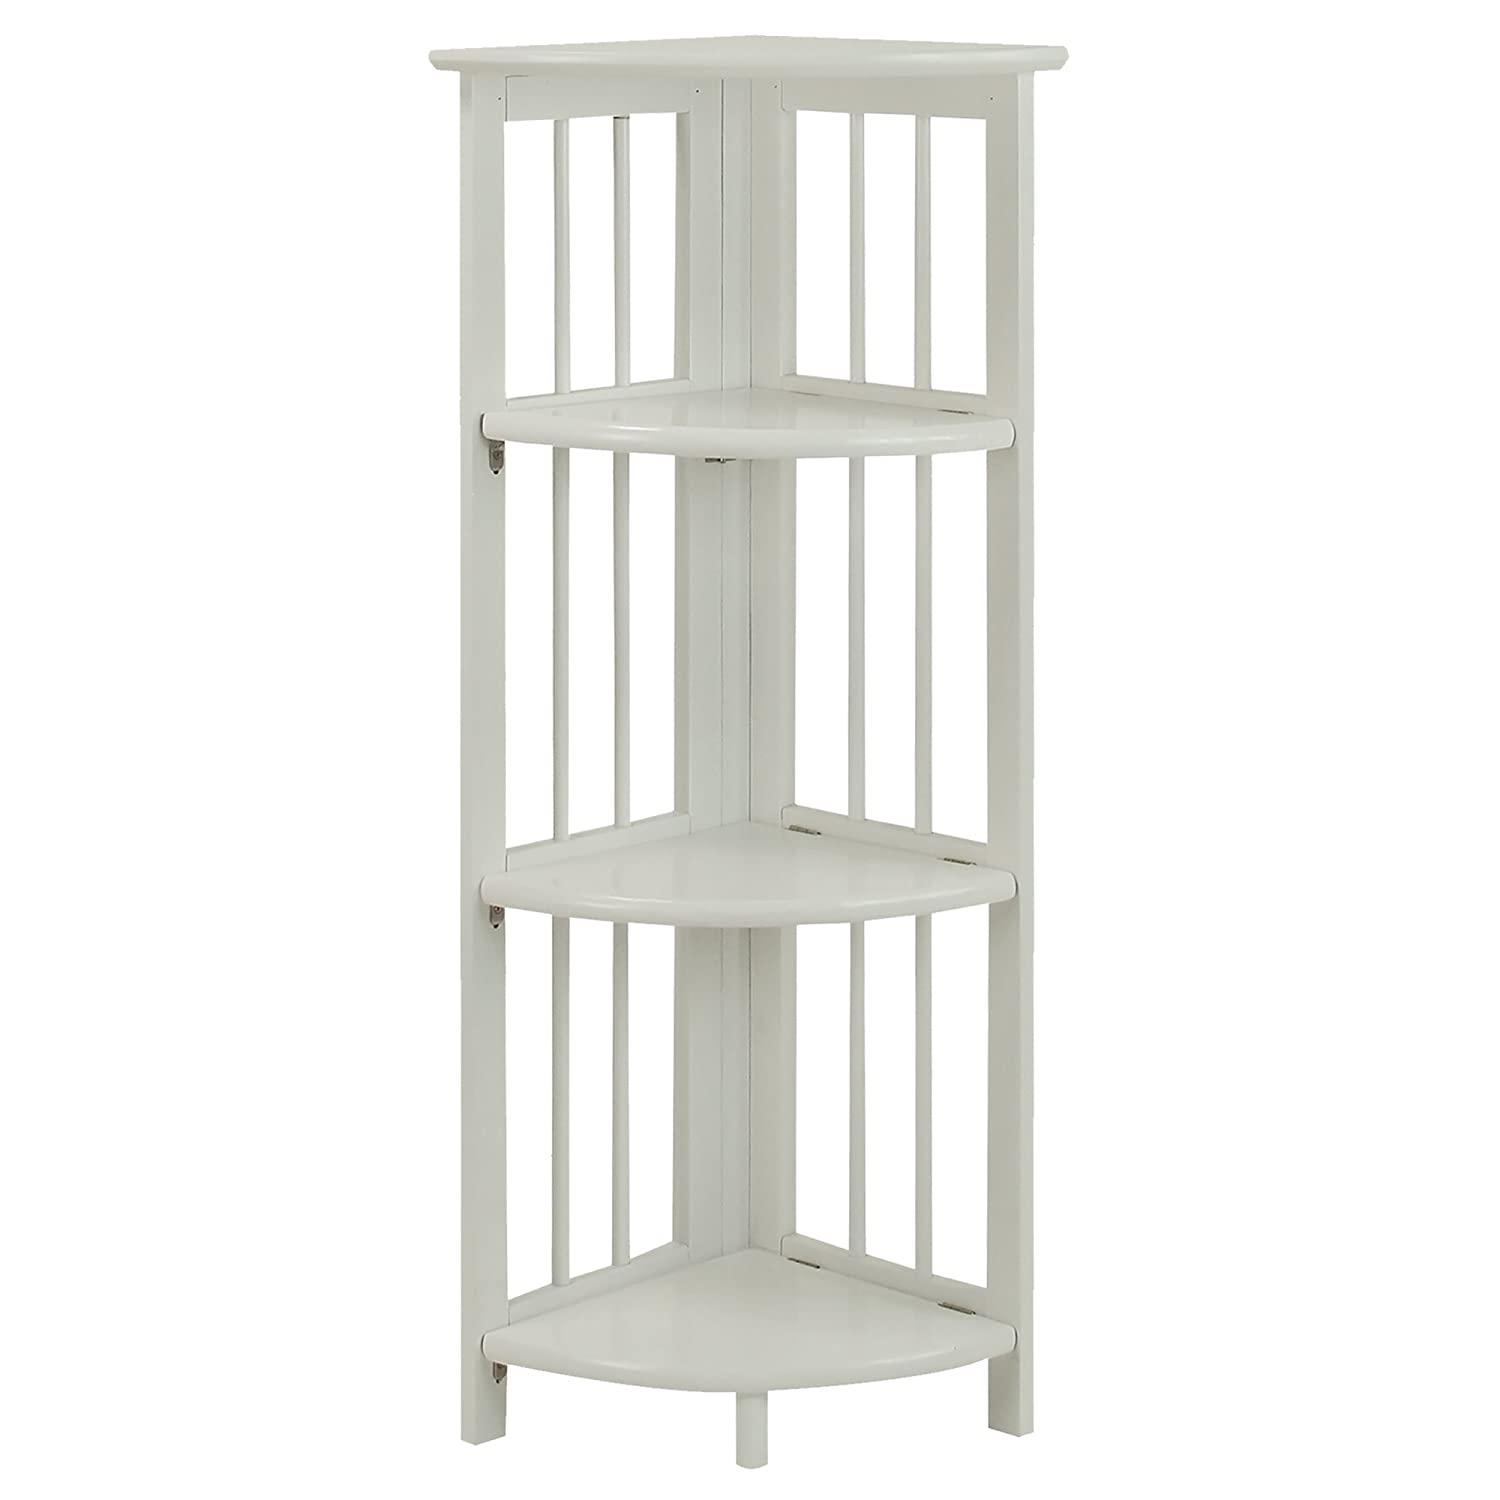 bookshelf collapsible tier walmart com ip shelf bamboo